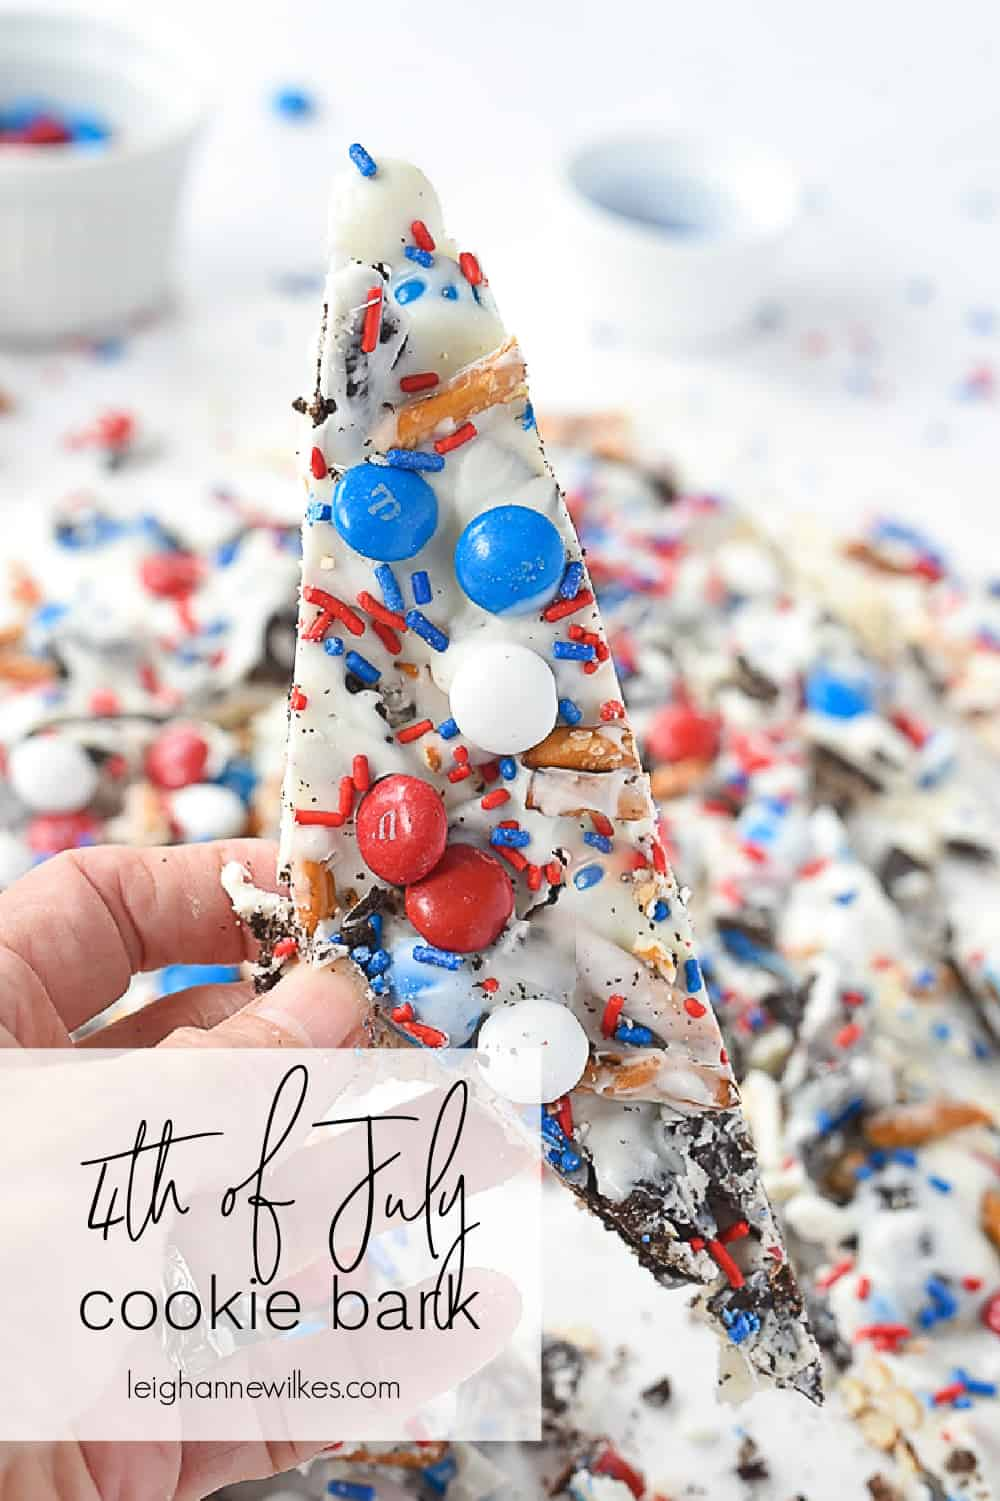 piece of 4th of july cookie bark in a hand